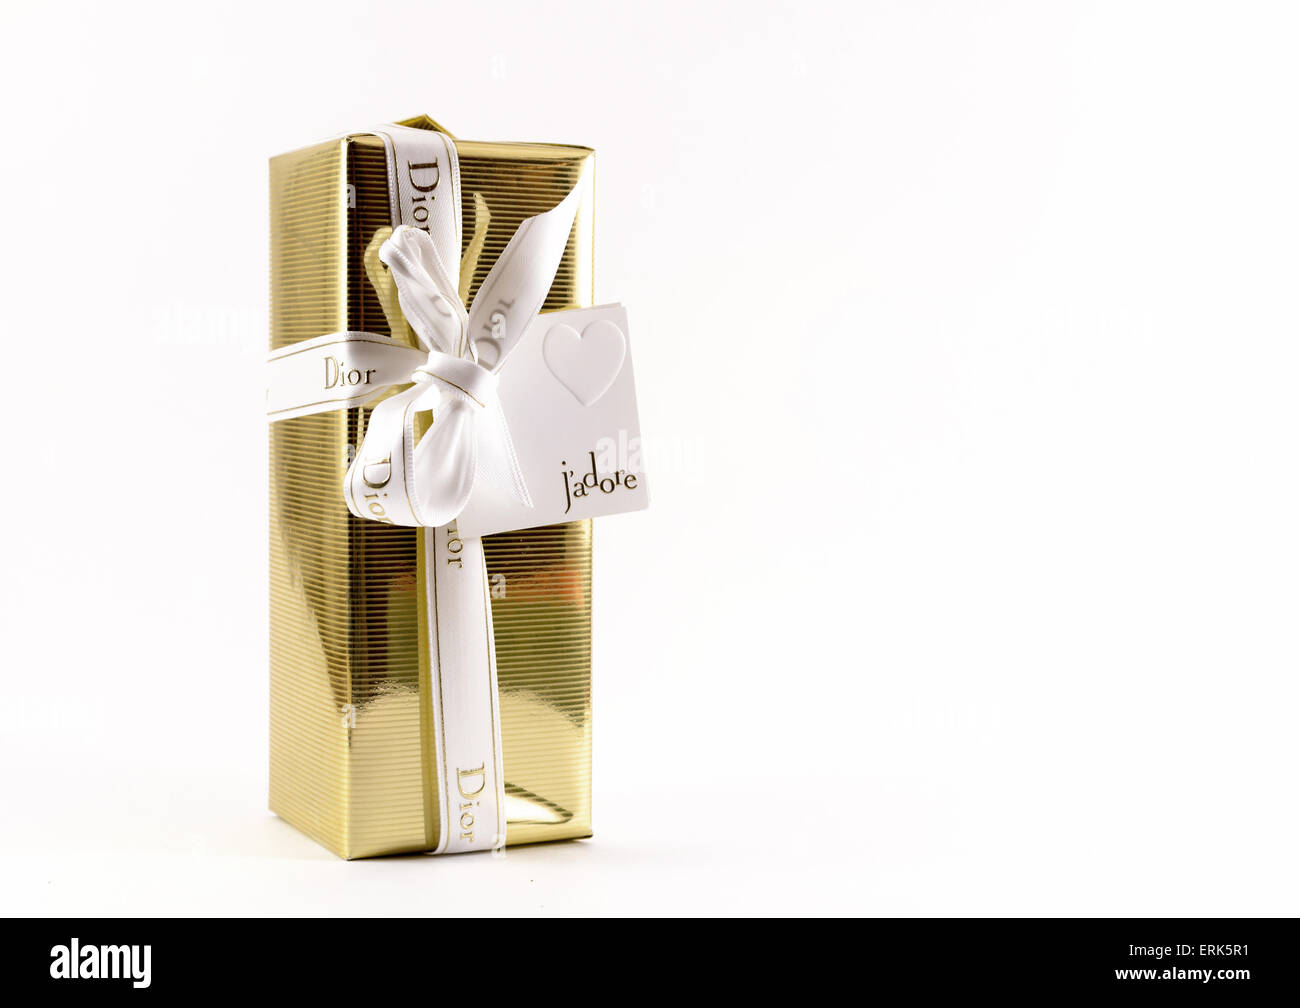 One of the leading perfumes in Russia Ufa for rich women who want to capture high culture on leading highstreets - Stock Image